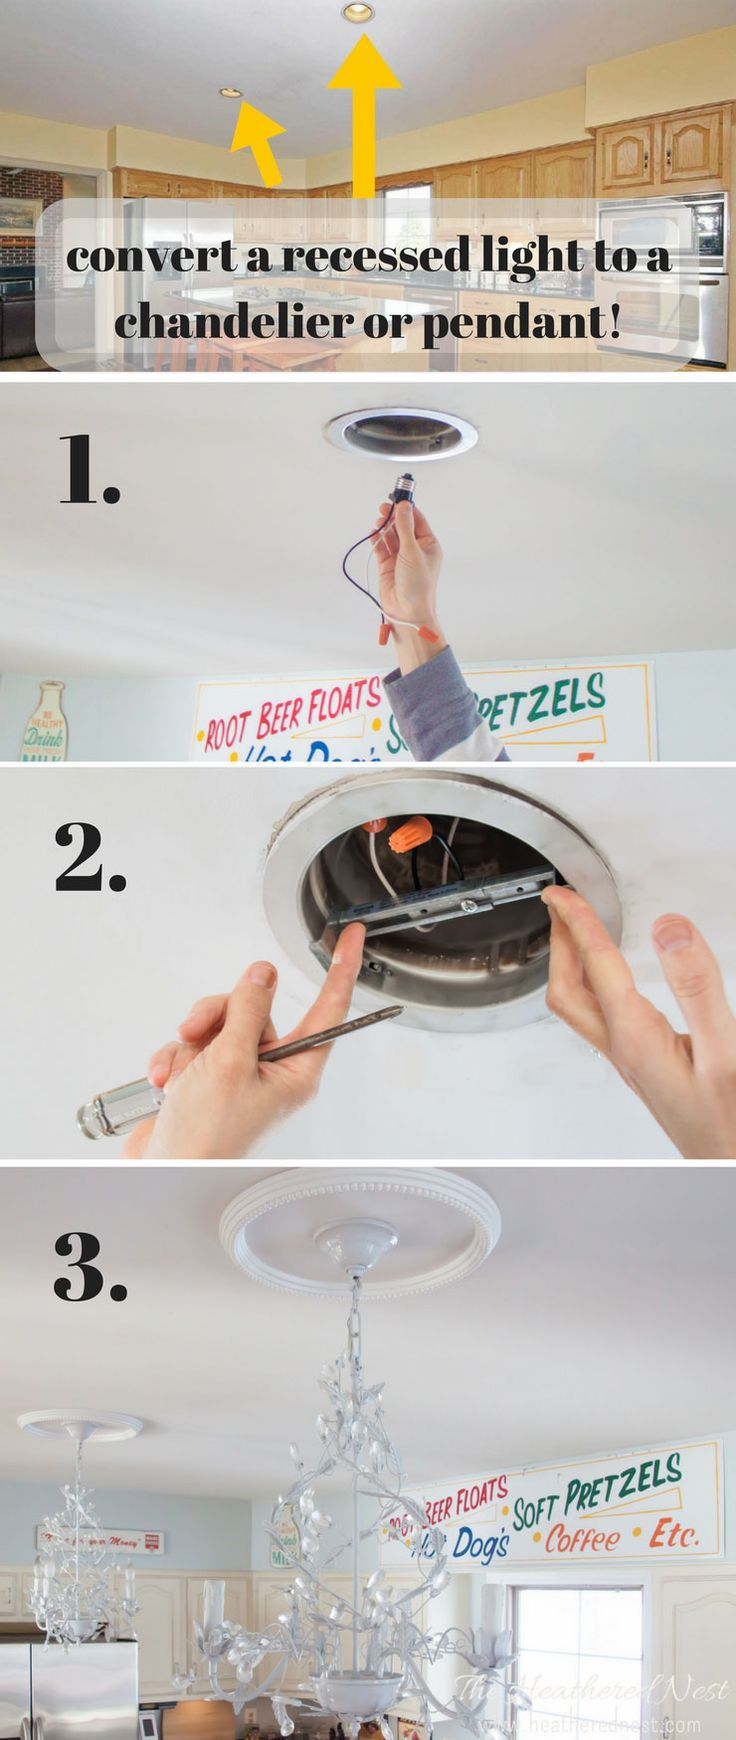 How To Change A Light Fixture Using Recessed Conversion Kit Aka Can The Lights